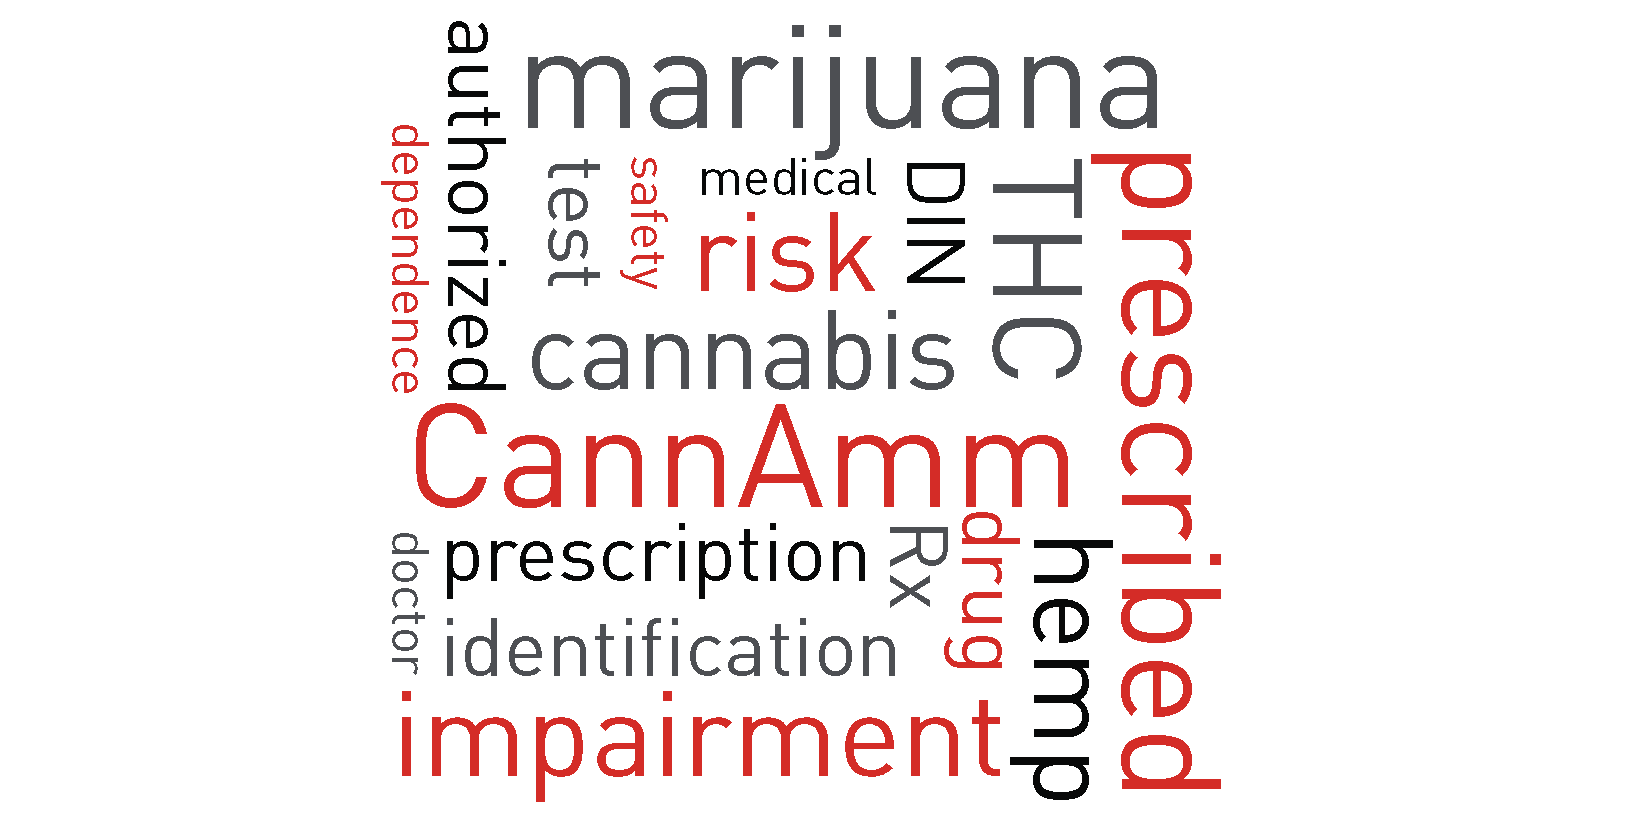 marijuana prescriptions